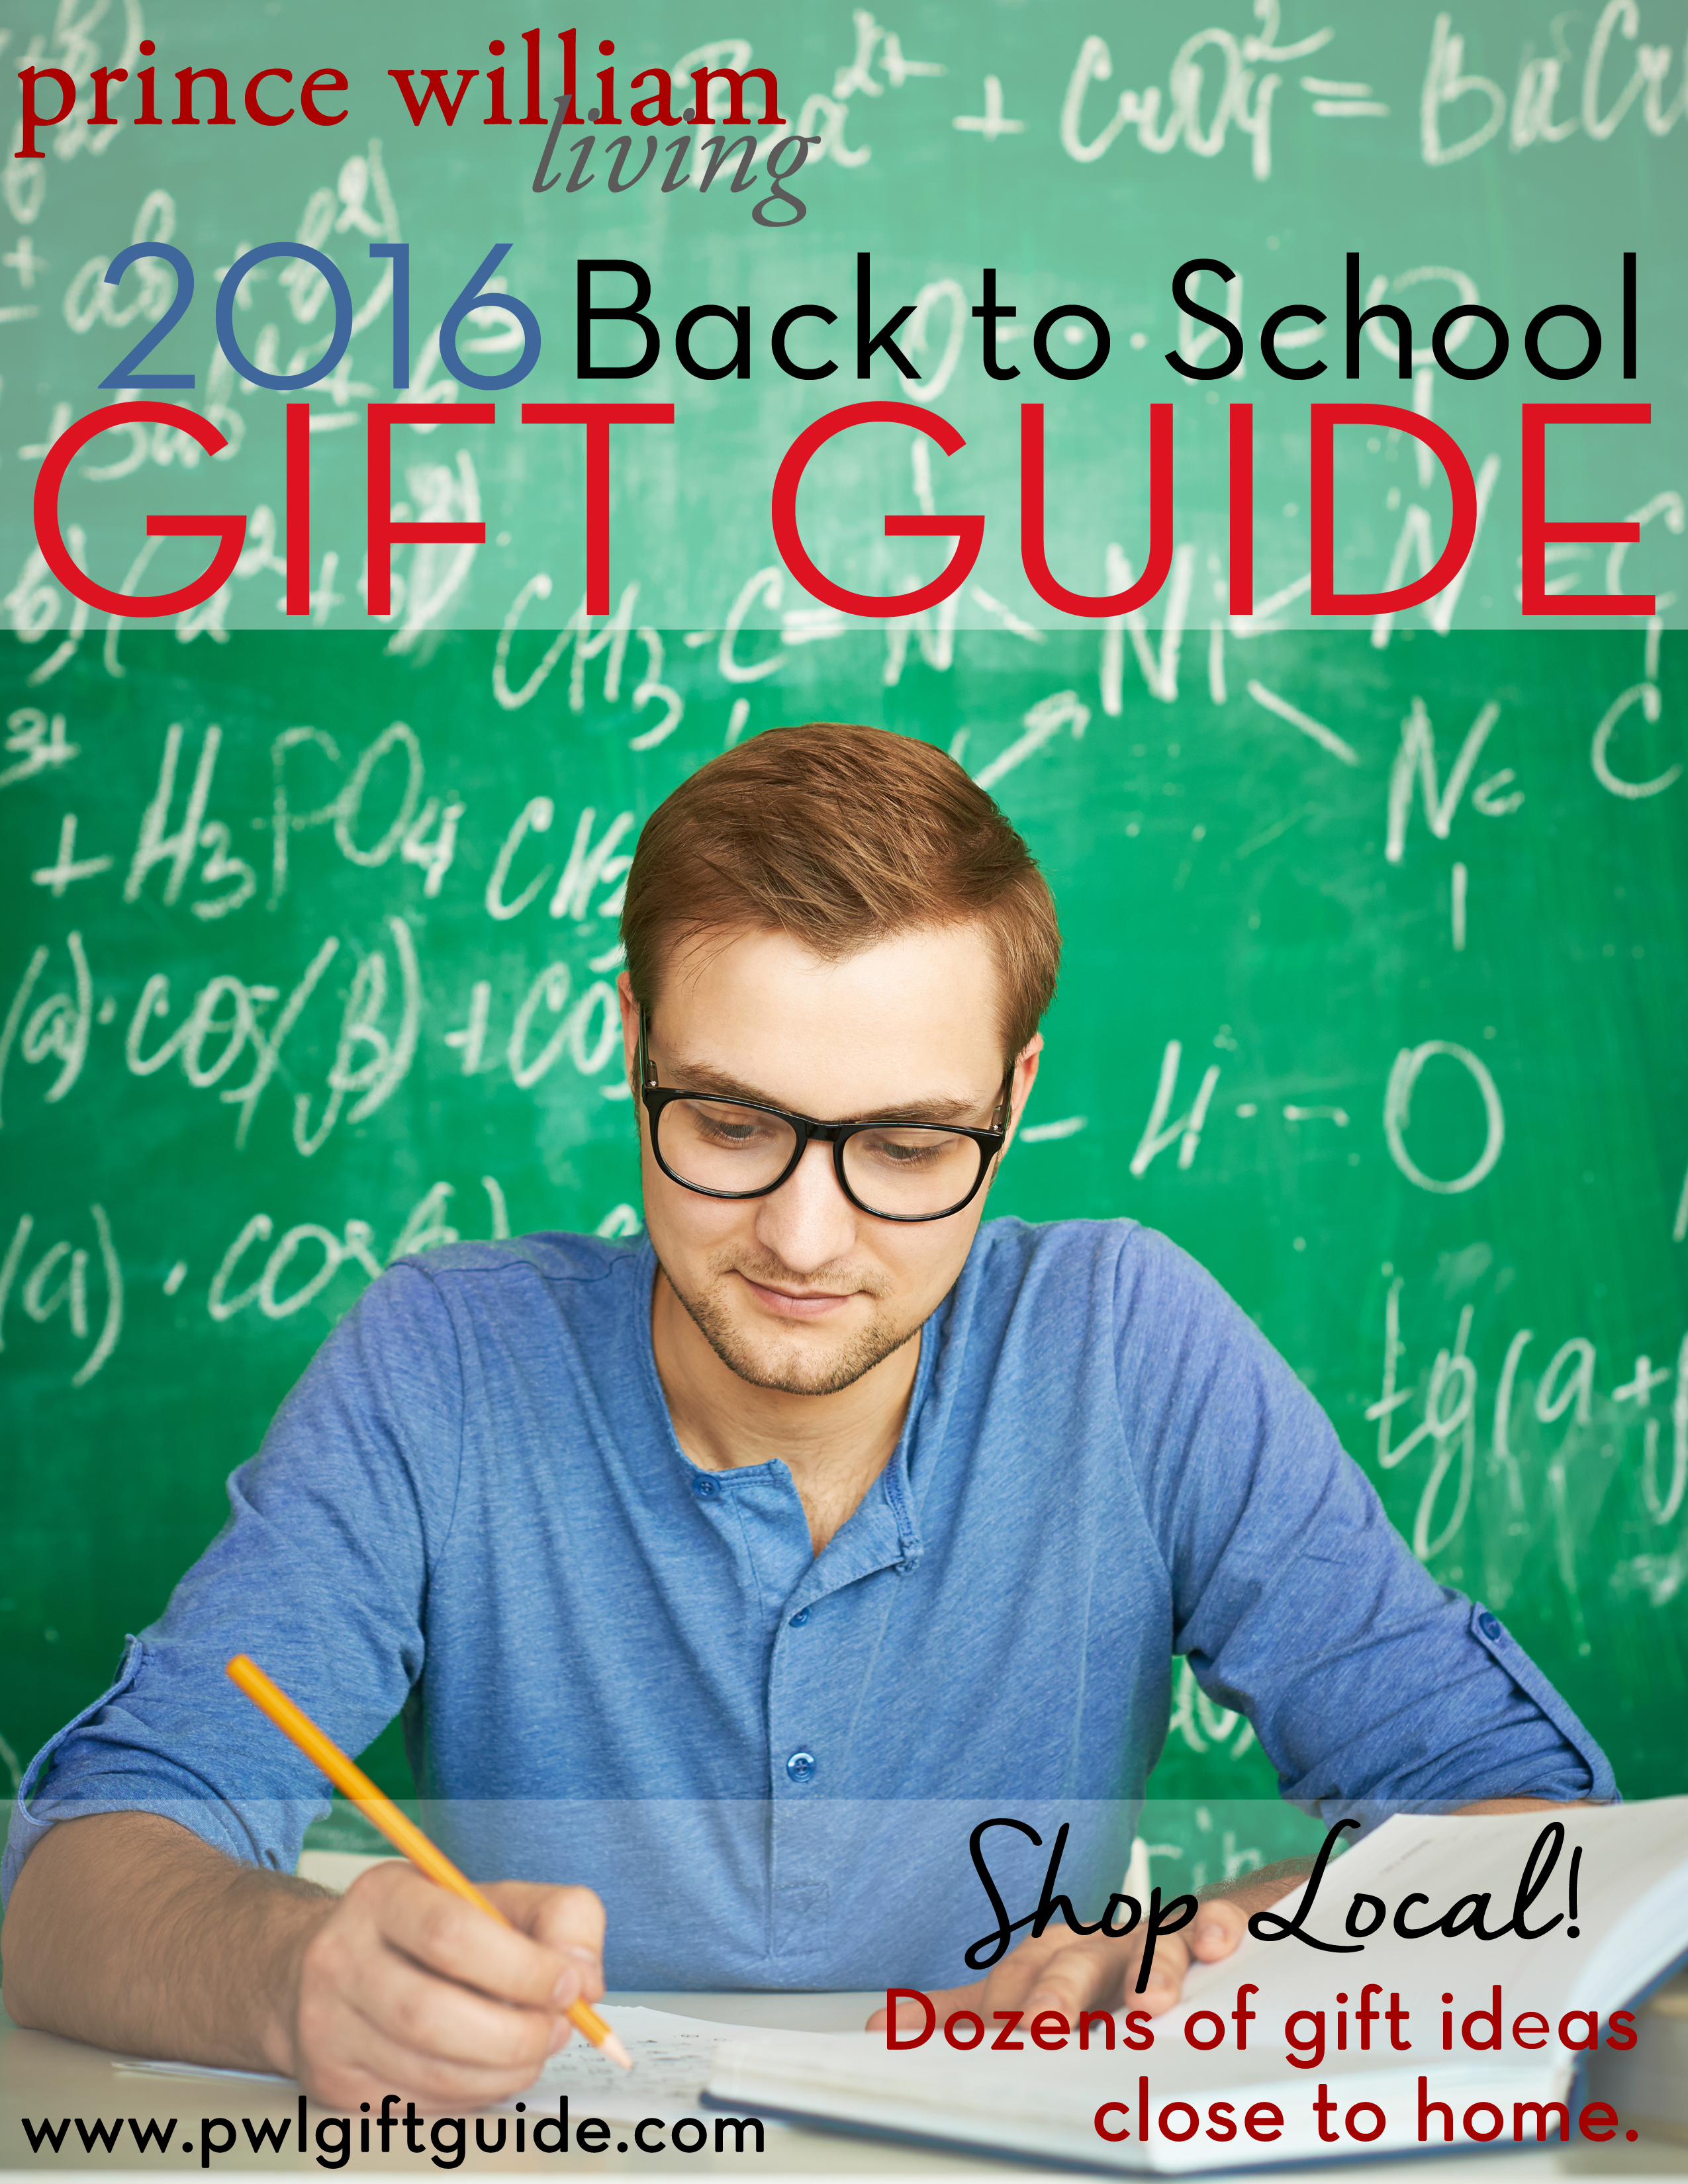 2016 Gift Guide Cover Back to School copy